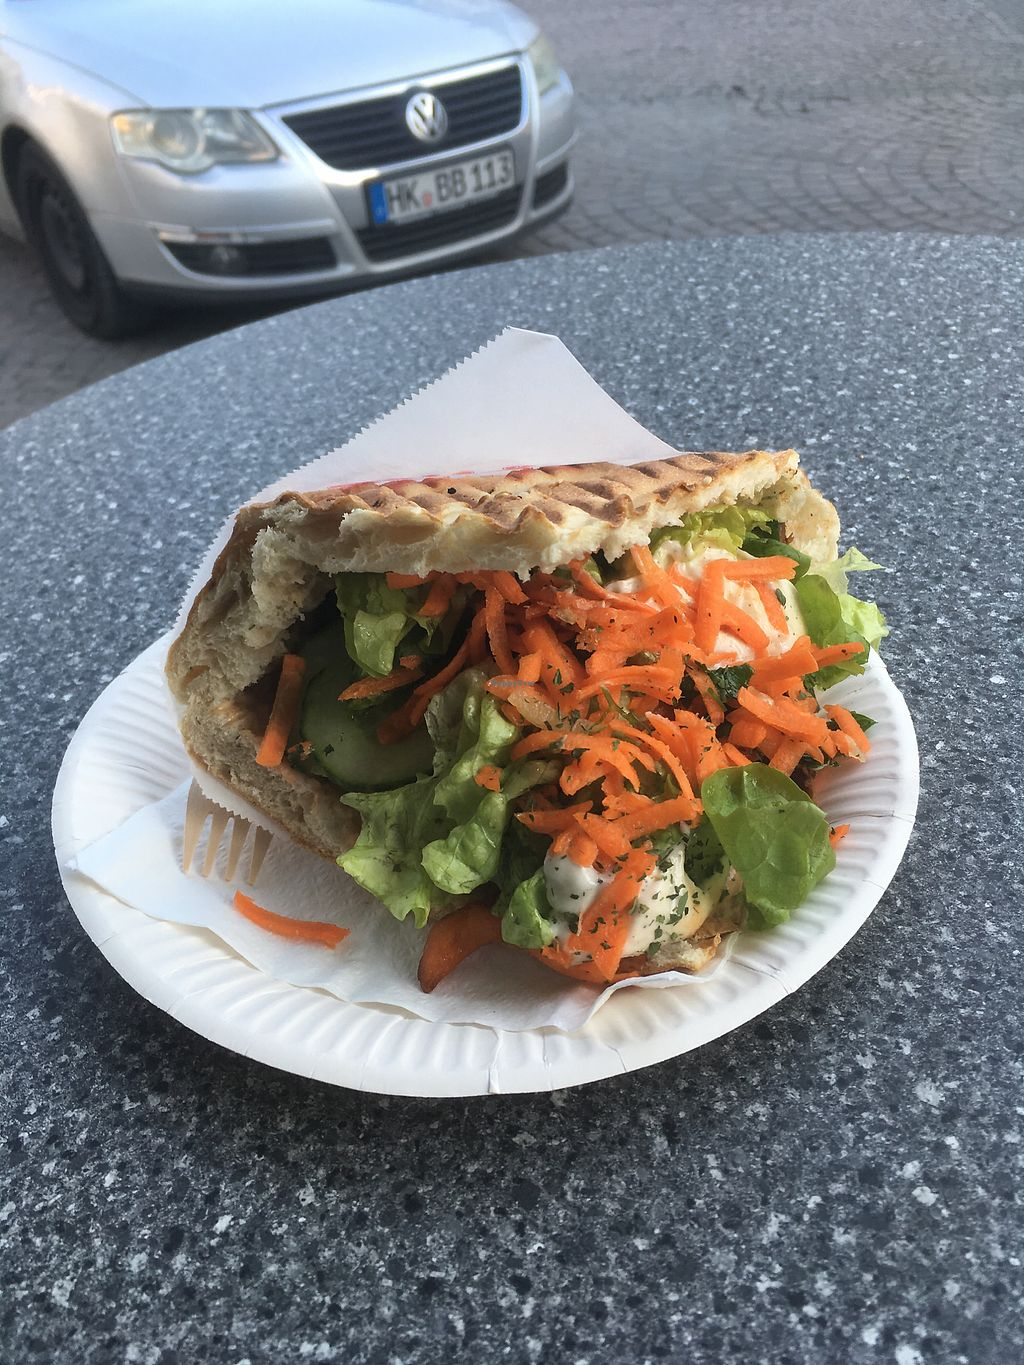 """Photo of Bi-Bu - Food Truck  by <a href=""""/members/profile/annasdrive"""">annasdrive</a> <br/>Gyros Sandwich  <br/> February 24, 2018  - <a href='/contact/abuse/image/62118/363227'>Report</a>"""